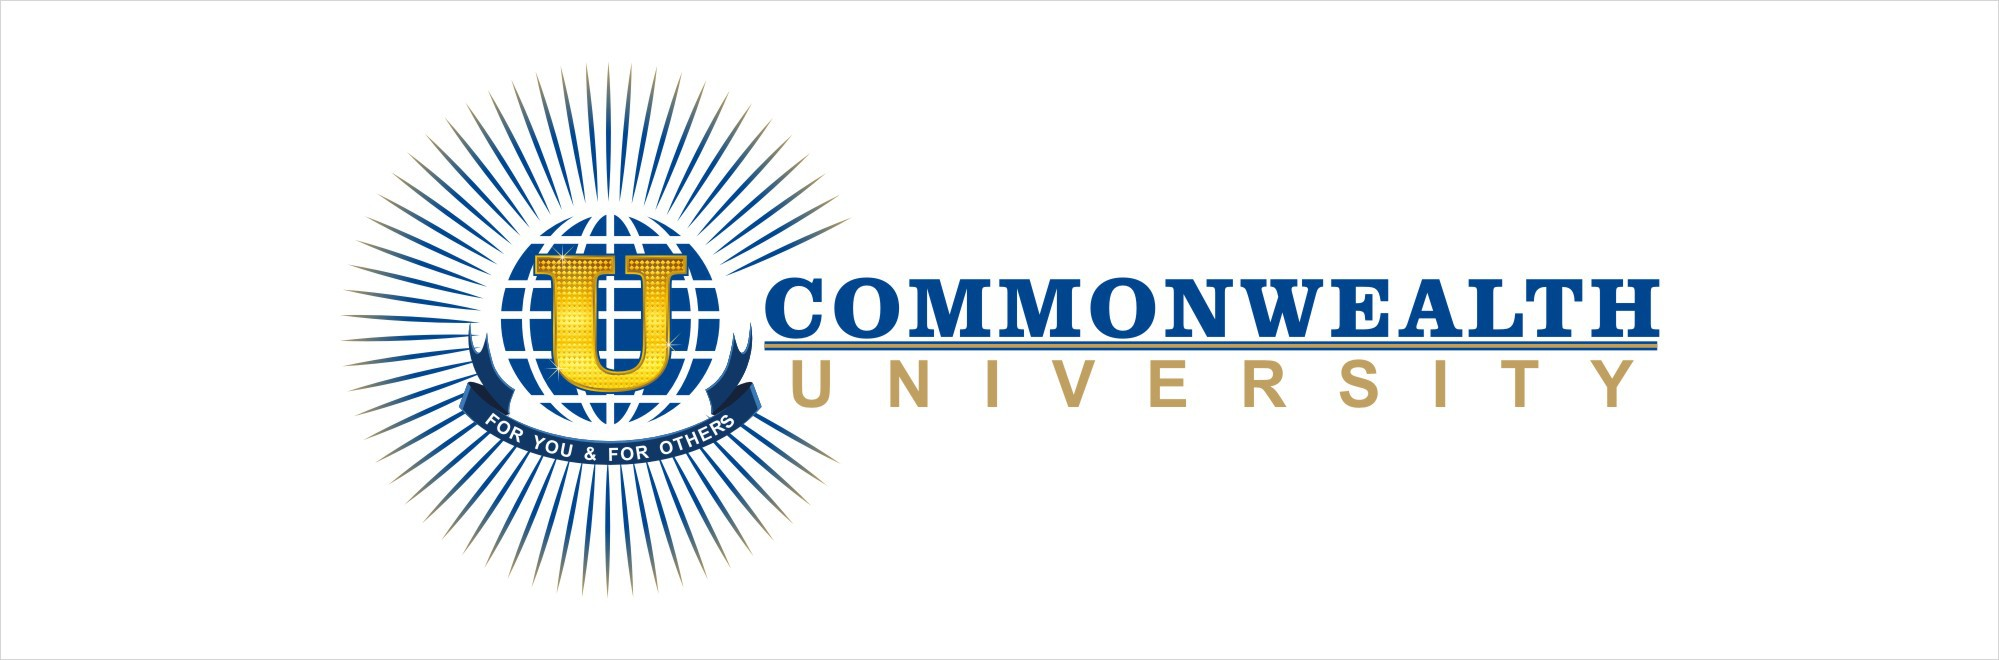 CommonWealth University LOGO DESIGN